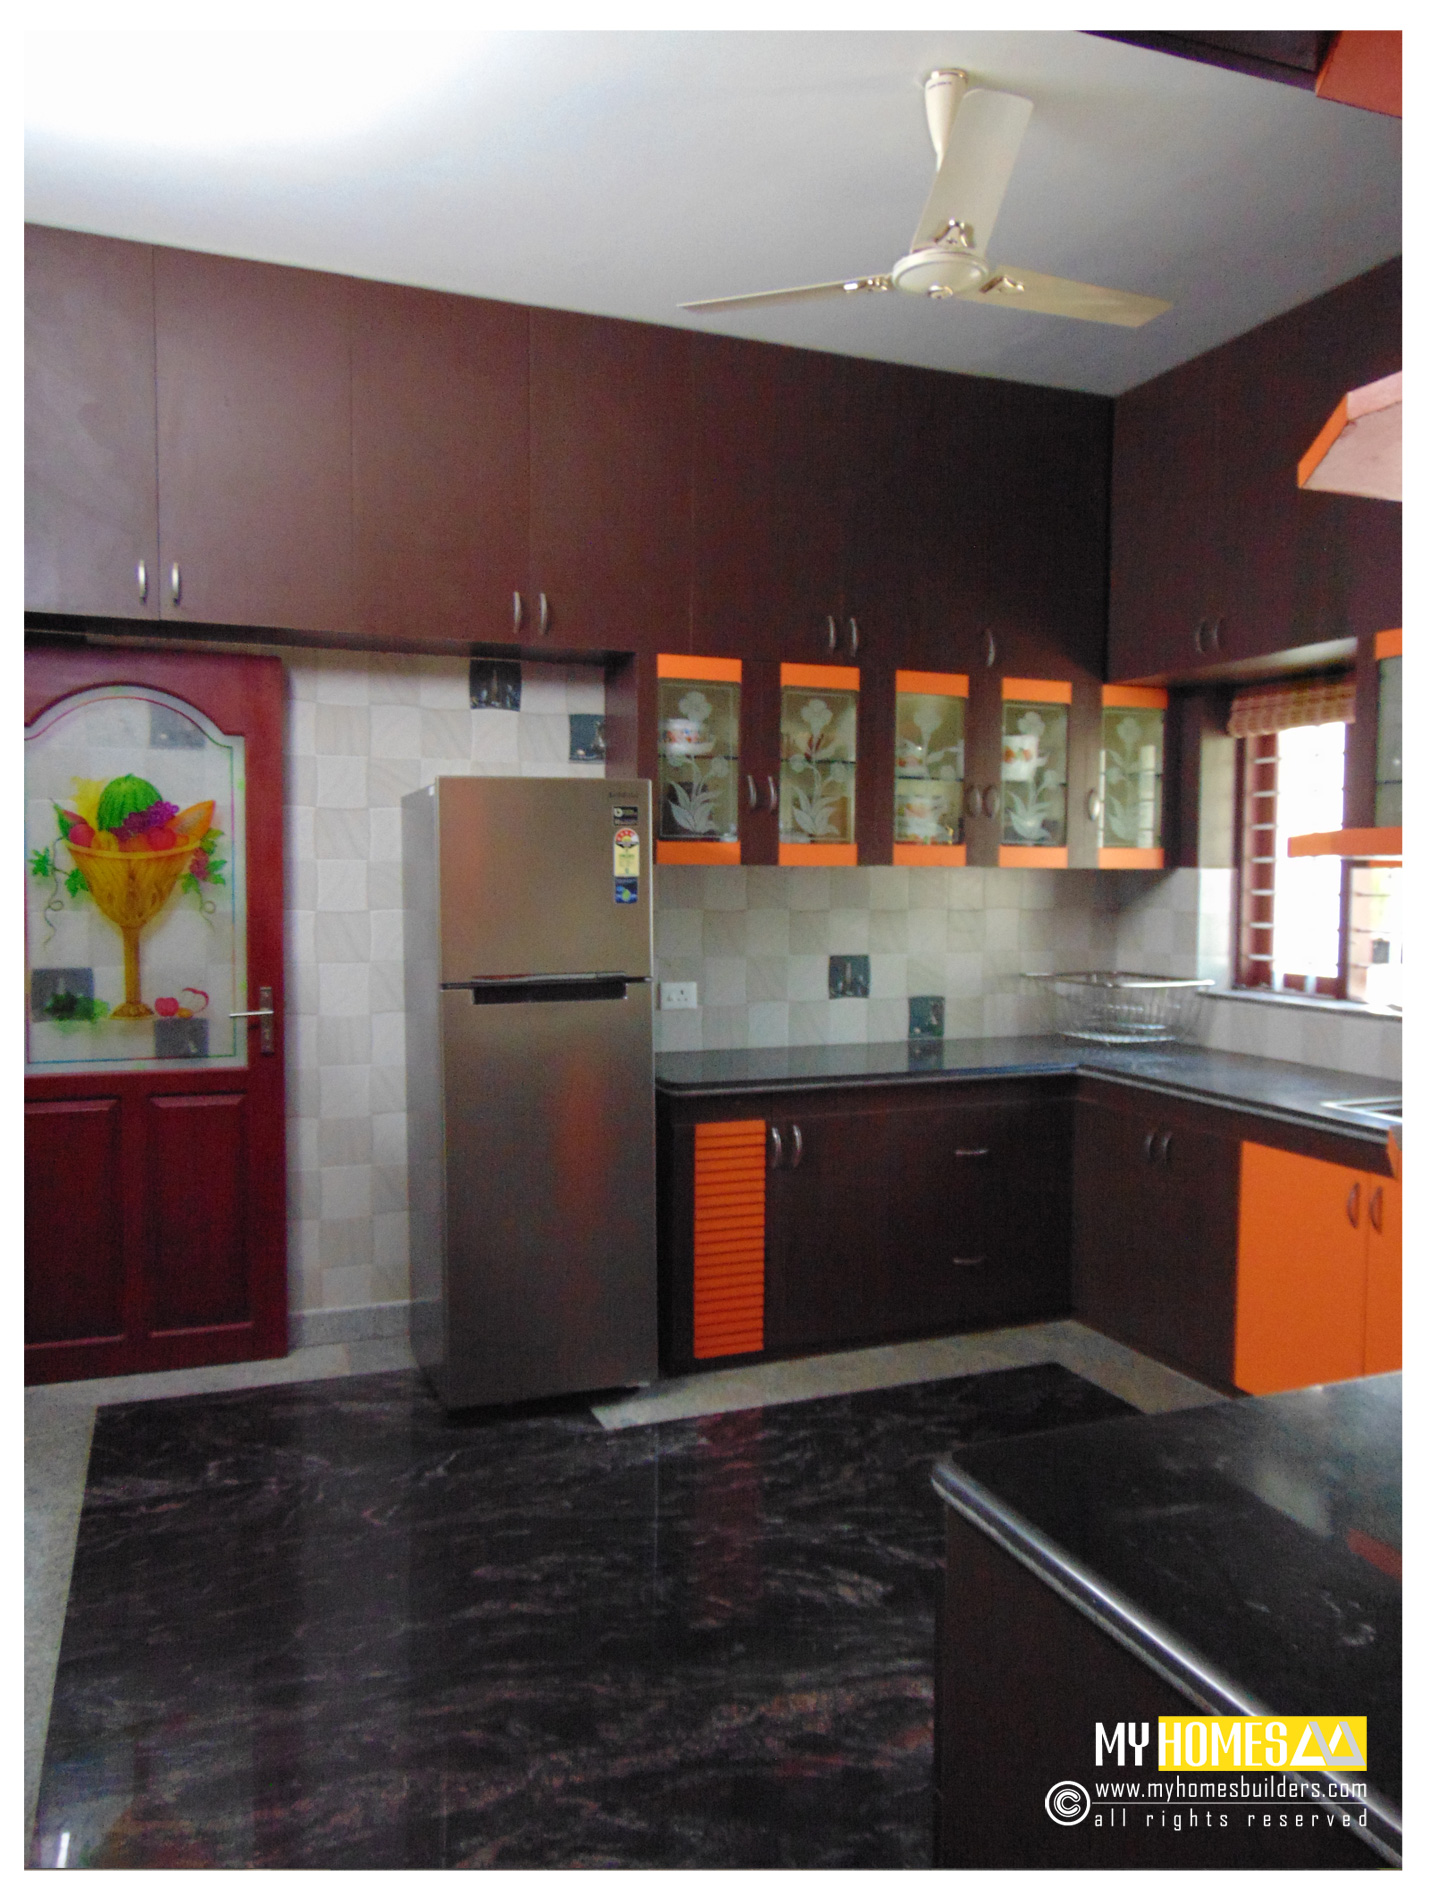 superb kerala style home interior designs 4 kerala On kerala home design interior kitchen